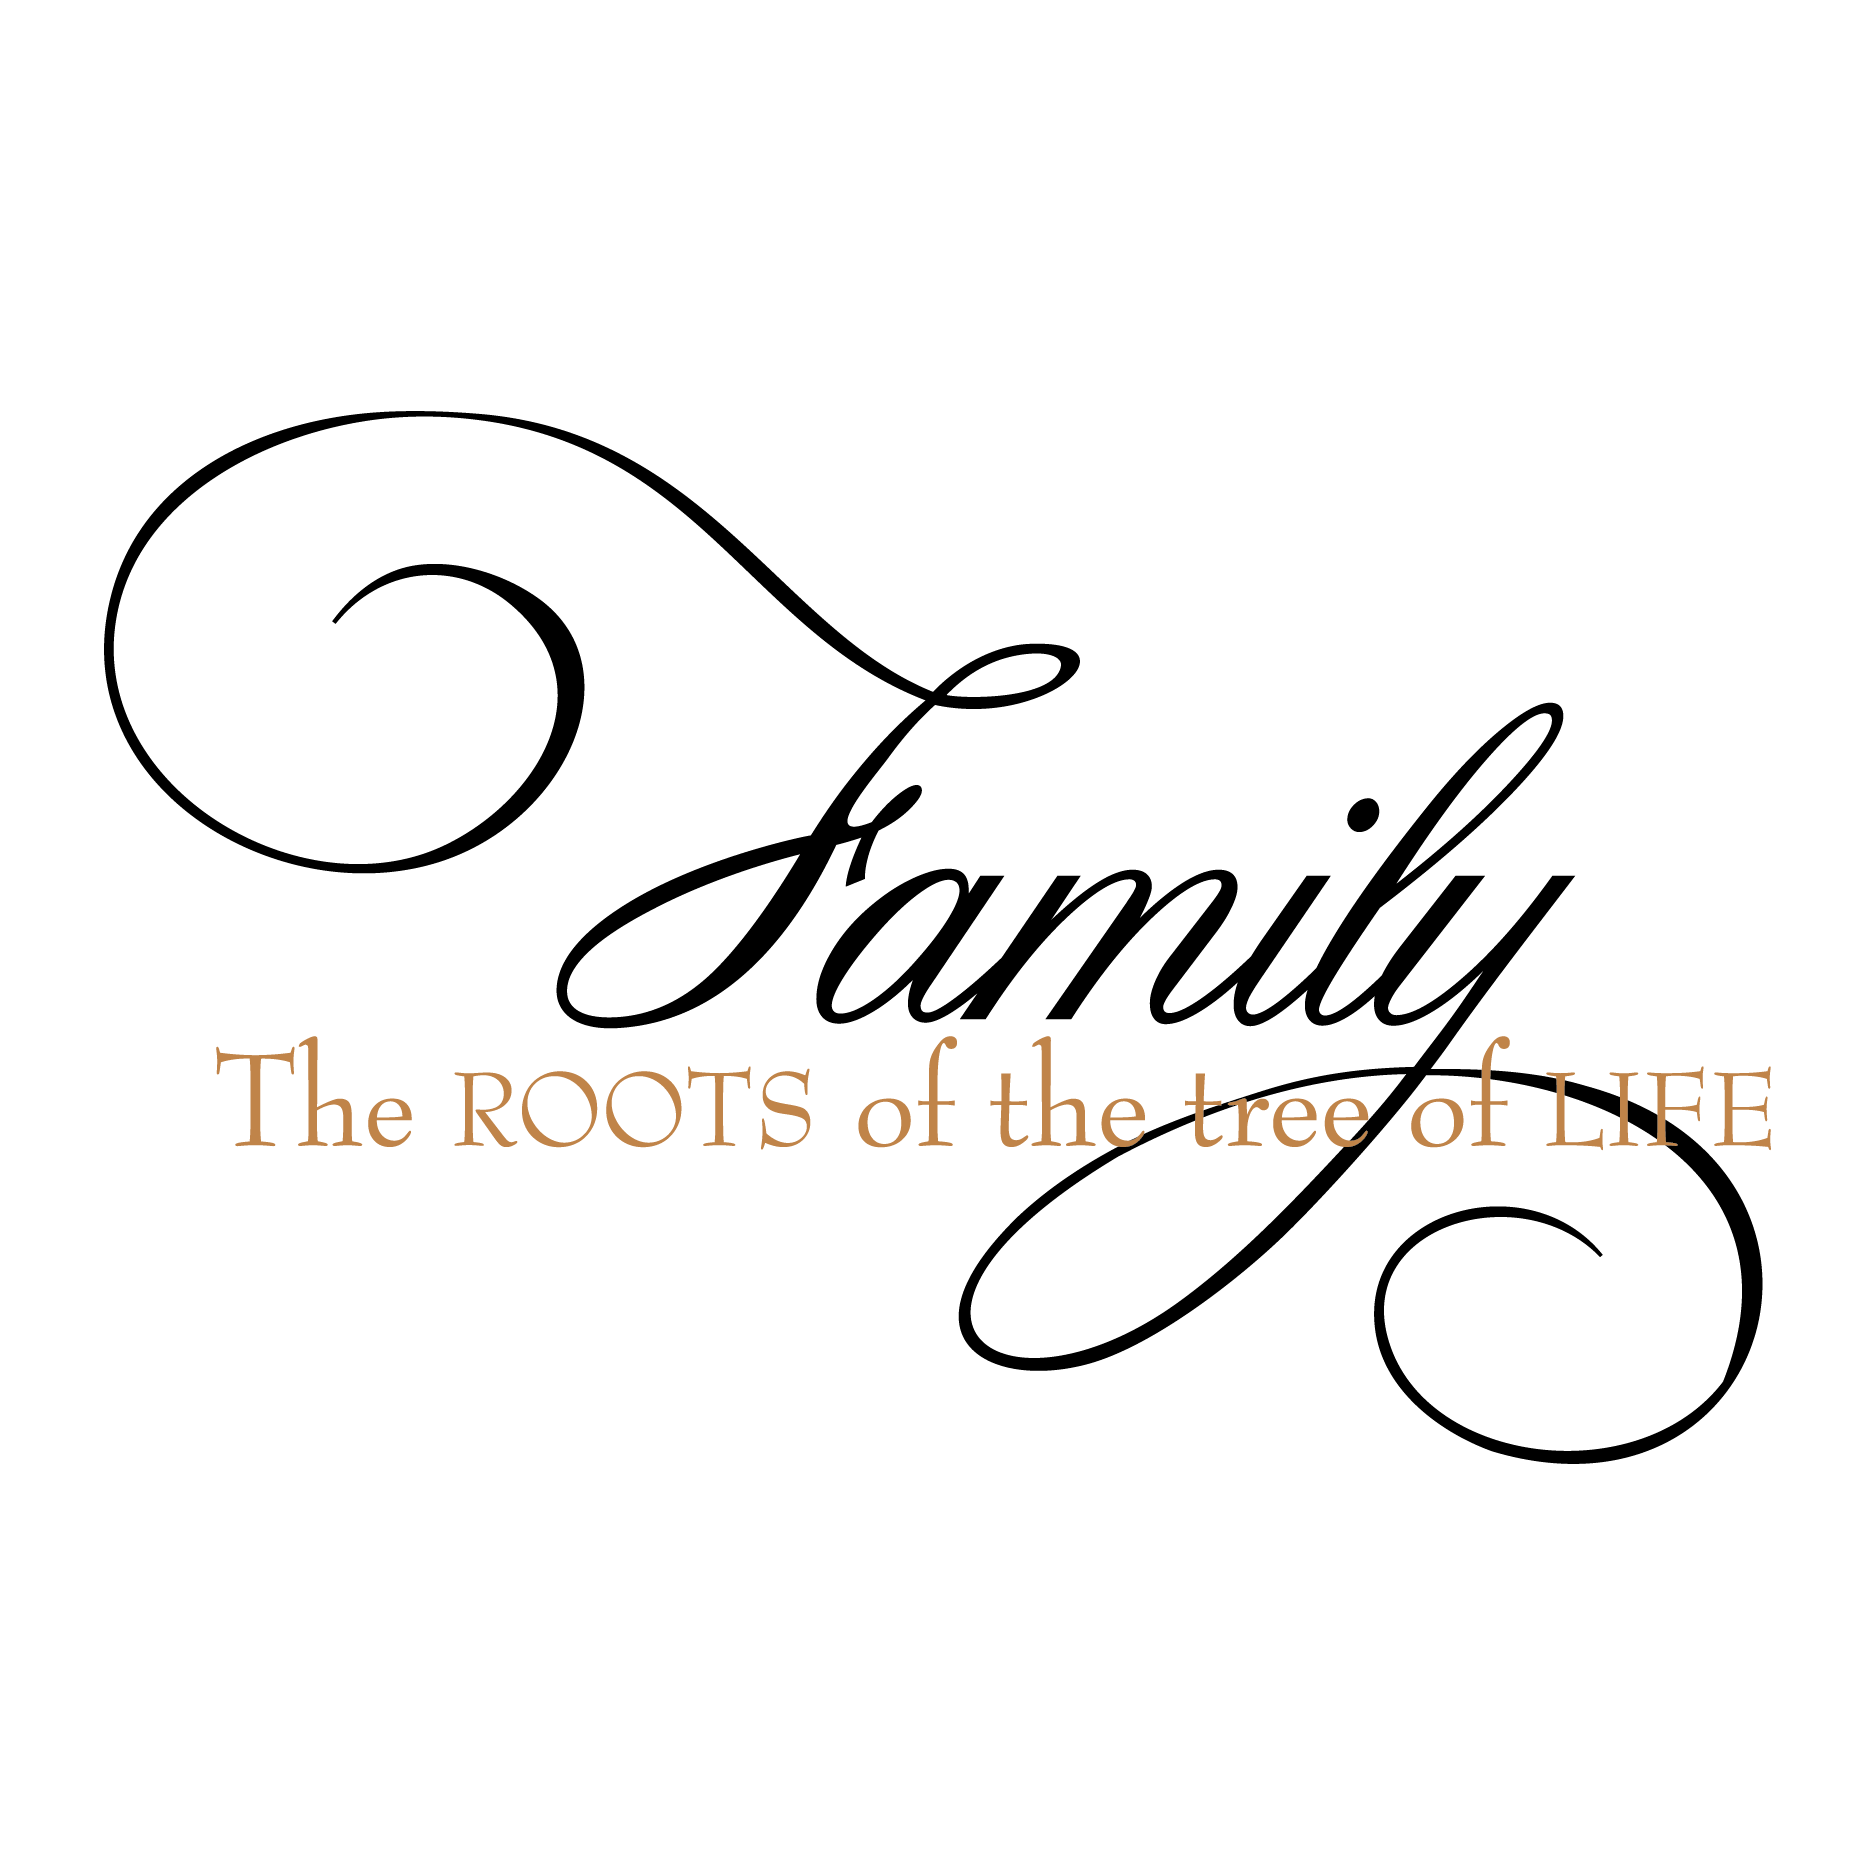 Roots Of The Tree Of Life Wall Quotes Decal Tree Of Life Quotes Roots Quotes Life Quotes Family